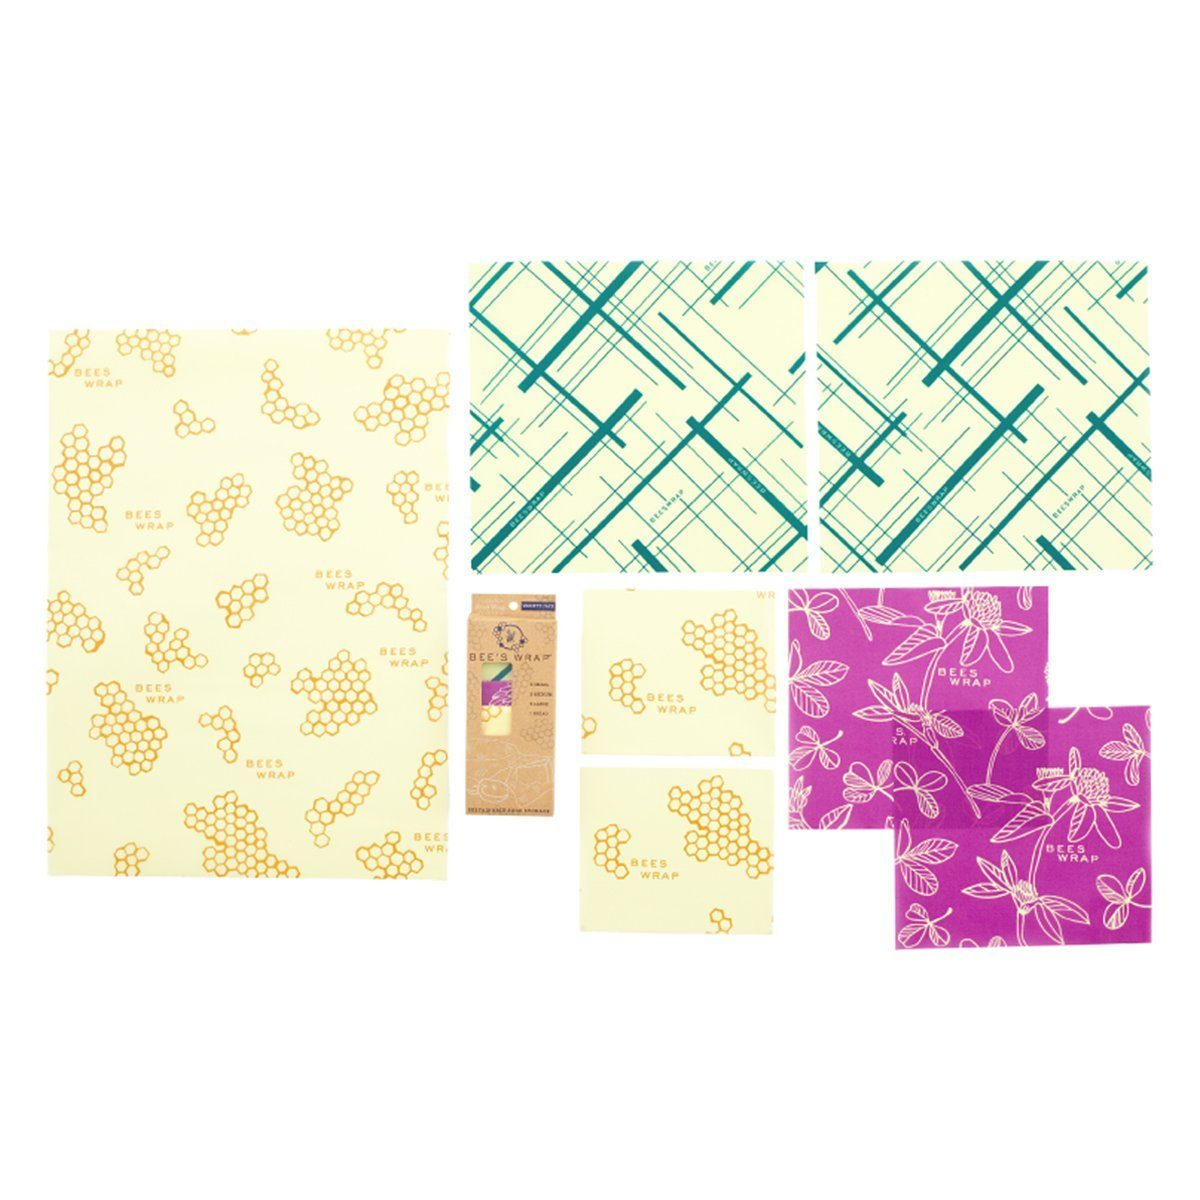 Bee's Wrap - Variety Pack Beeswax Wrap Bee's Wrap